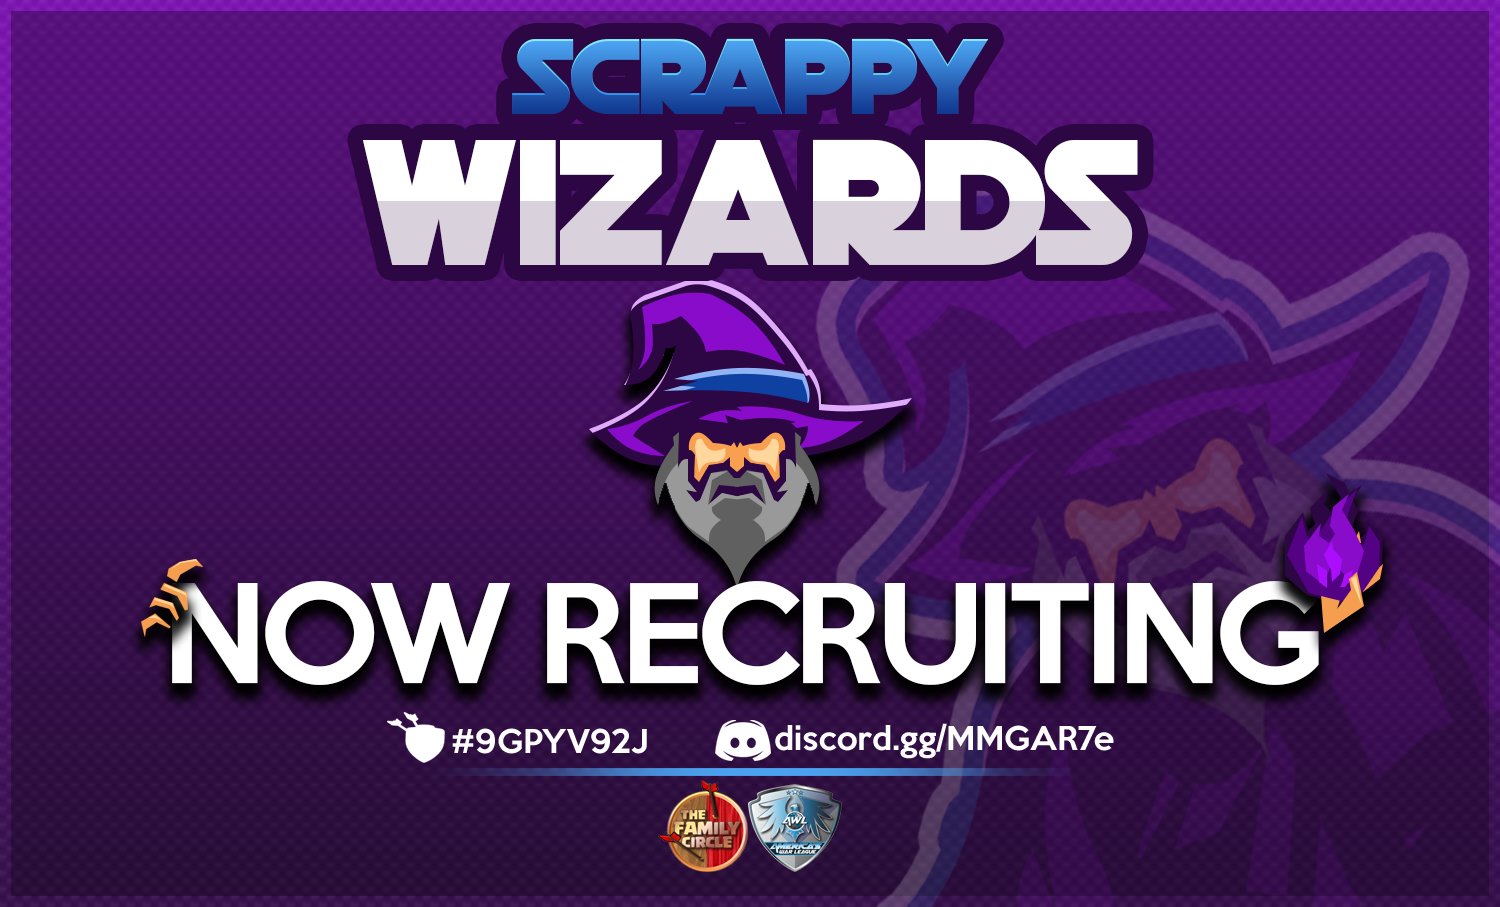 Scrappy Wizards